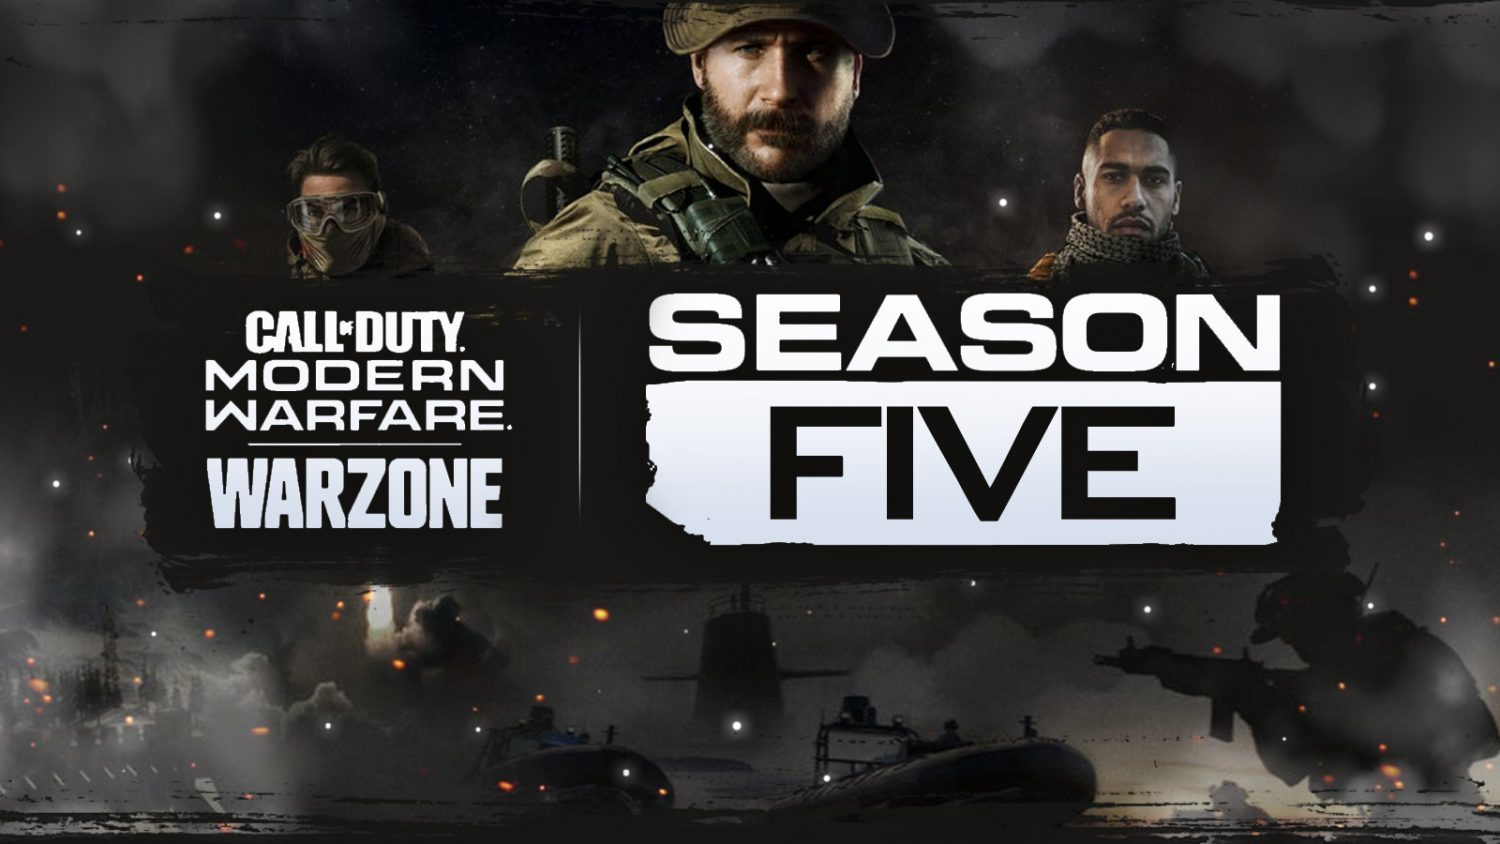 Call Of Duty Modern Warfare And Warzone Season 5 Release Date